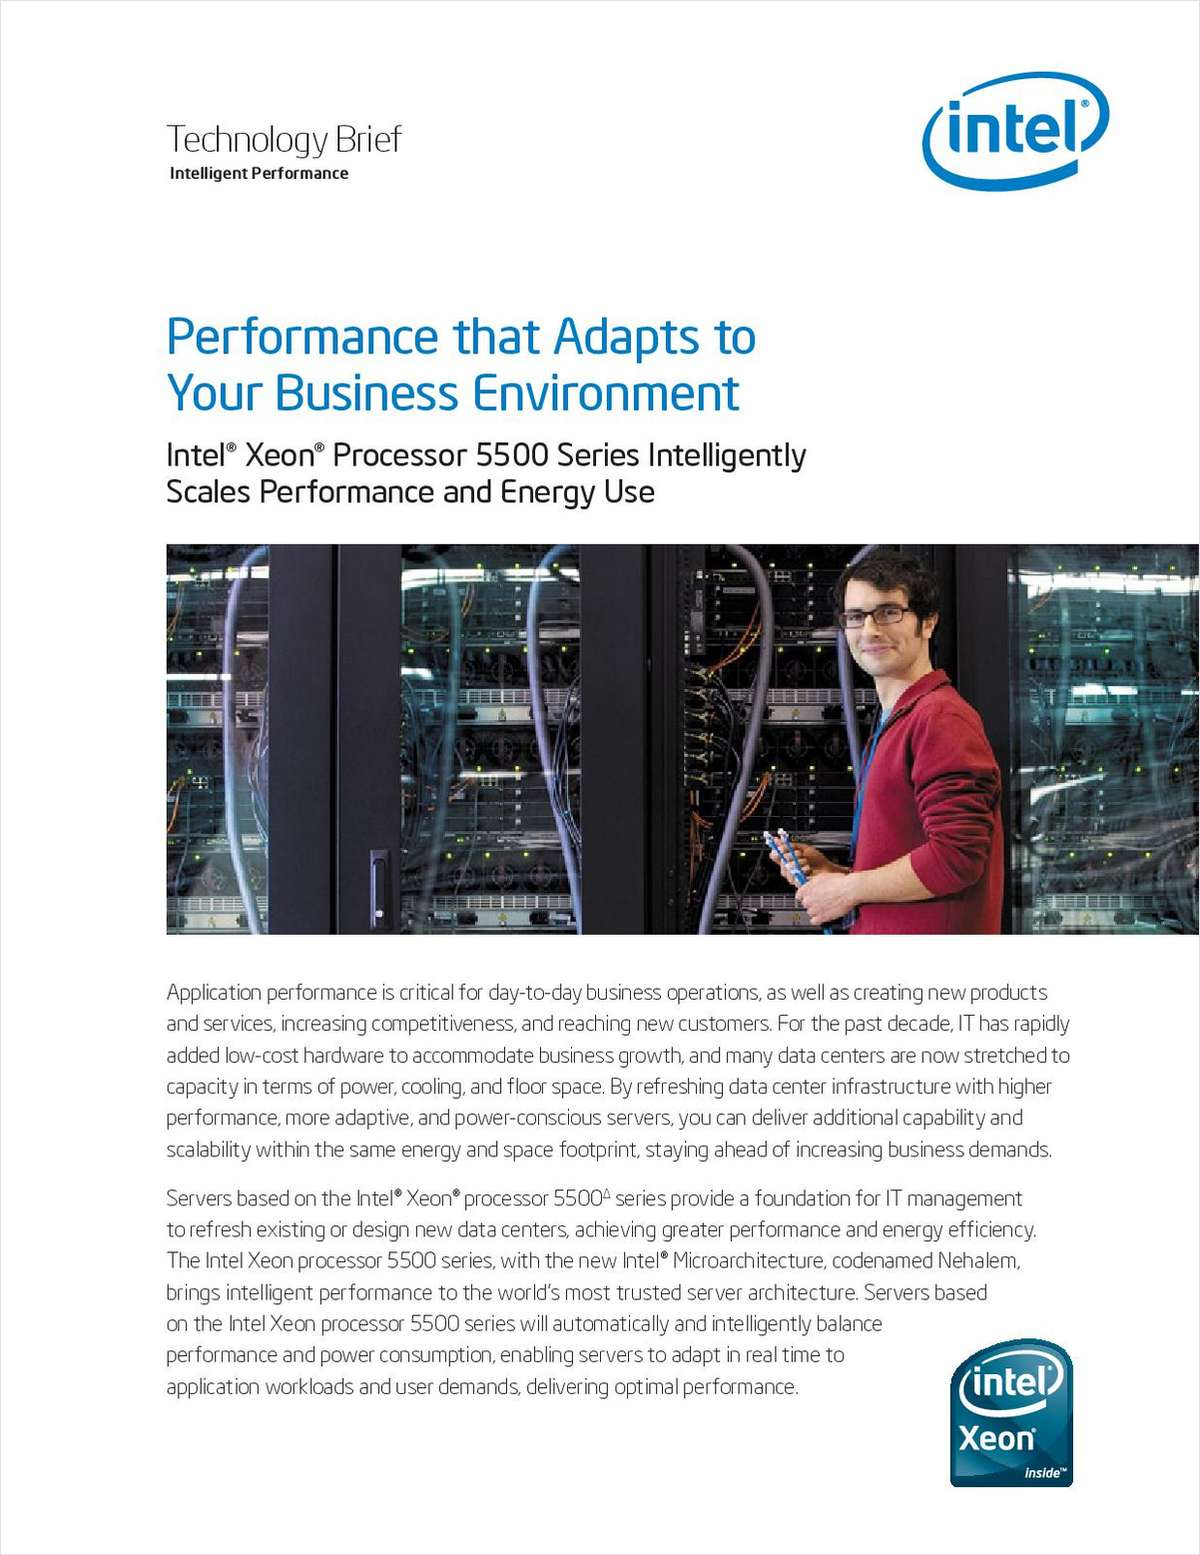 Performance that Adapts to Your Business Environment: Intel® Xeon® Processor 5500 Series Intelligently Scales Performance and Energy Use